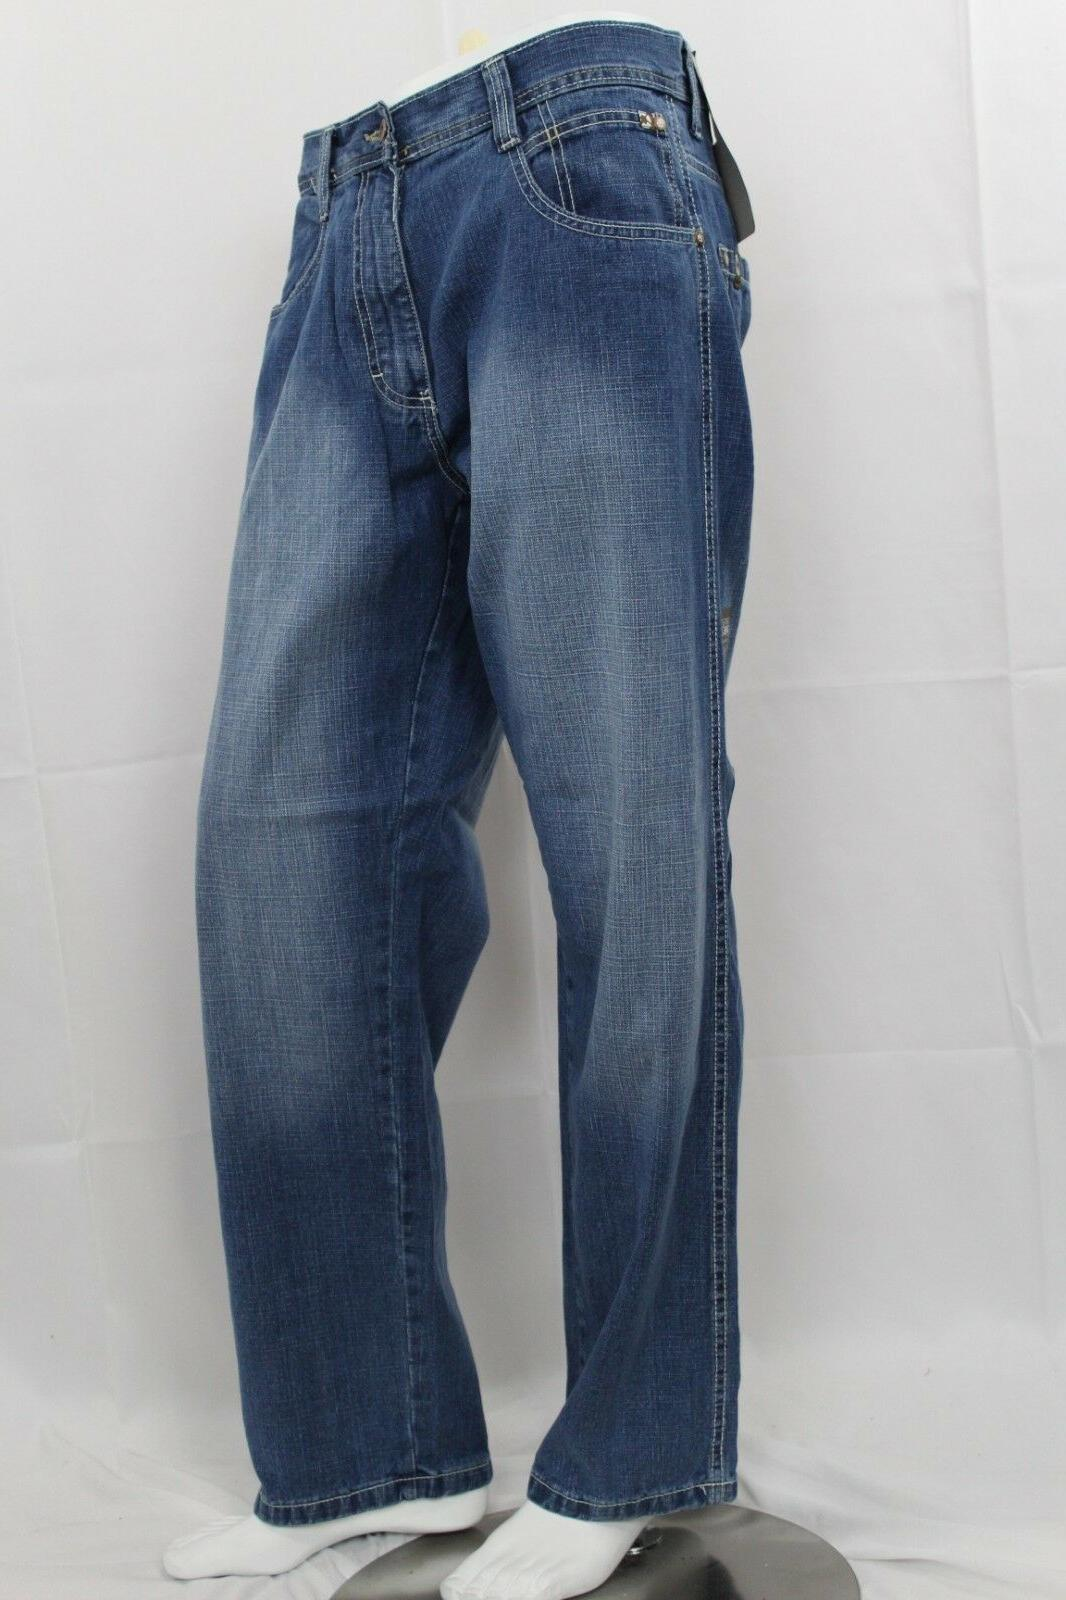 SOUTHPOLE DENIM JEAN PANTS 9001-4180 RELAXED FIT